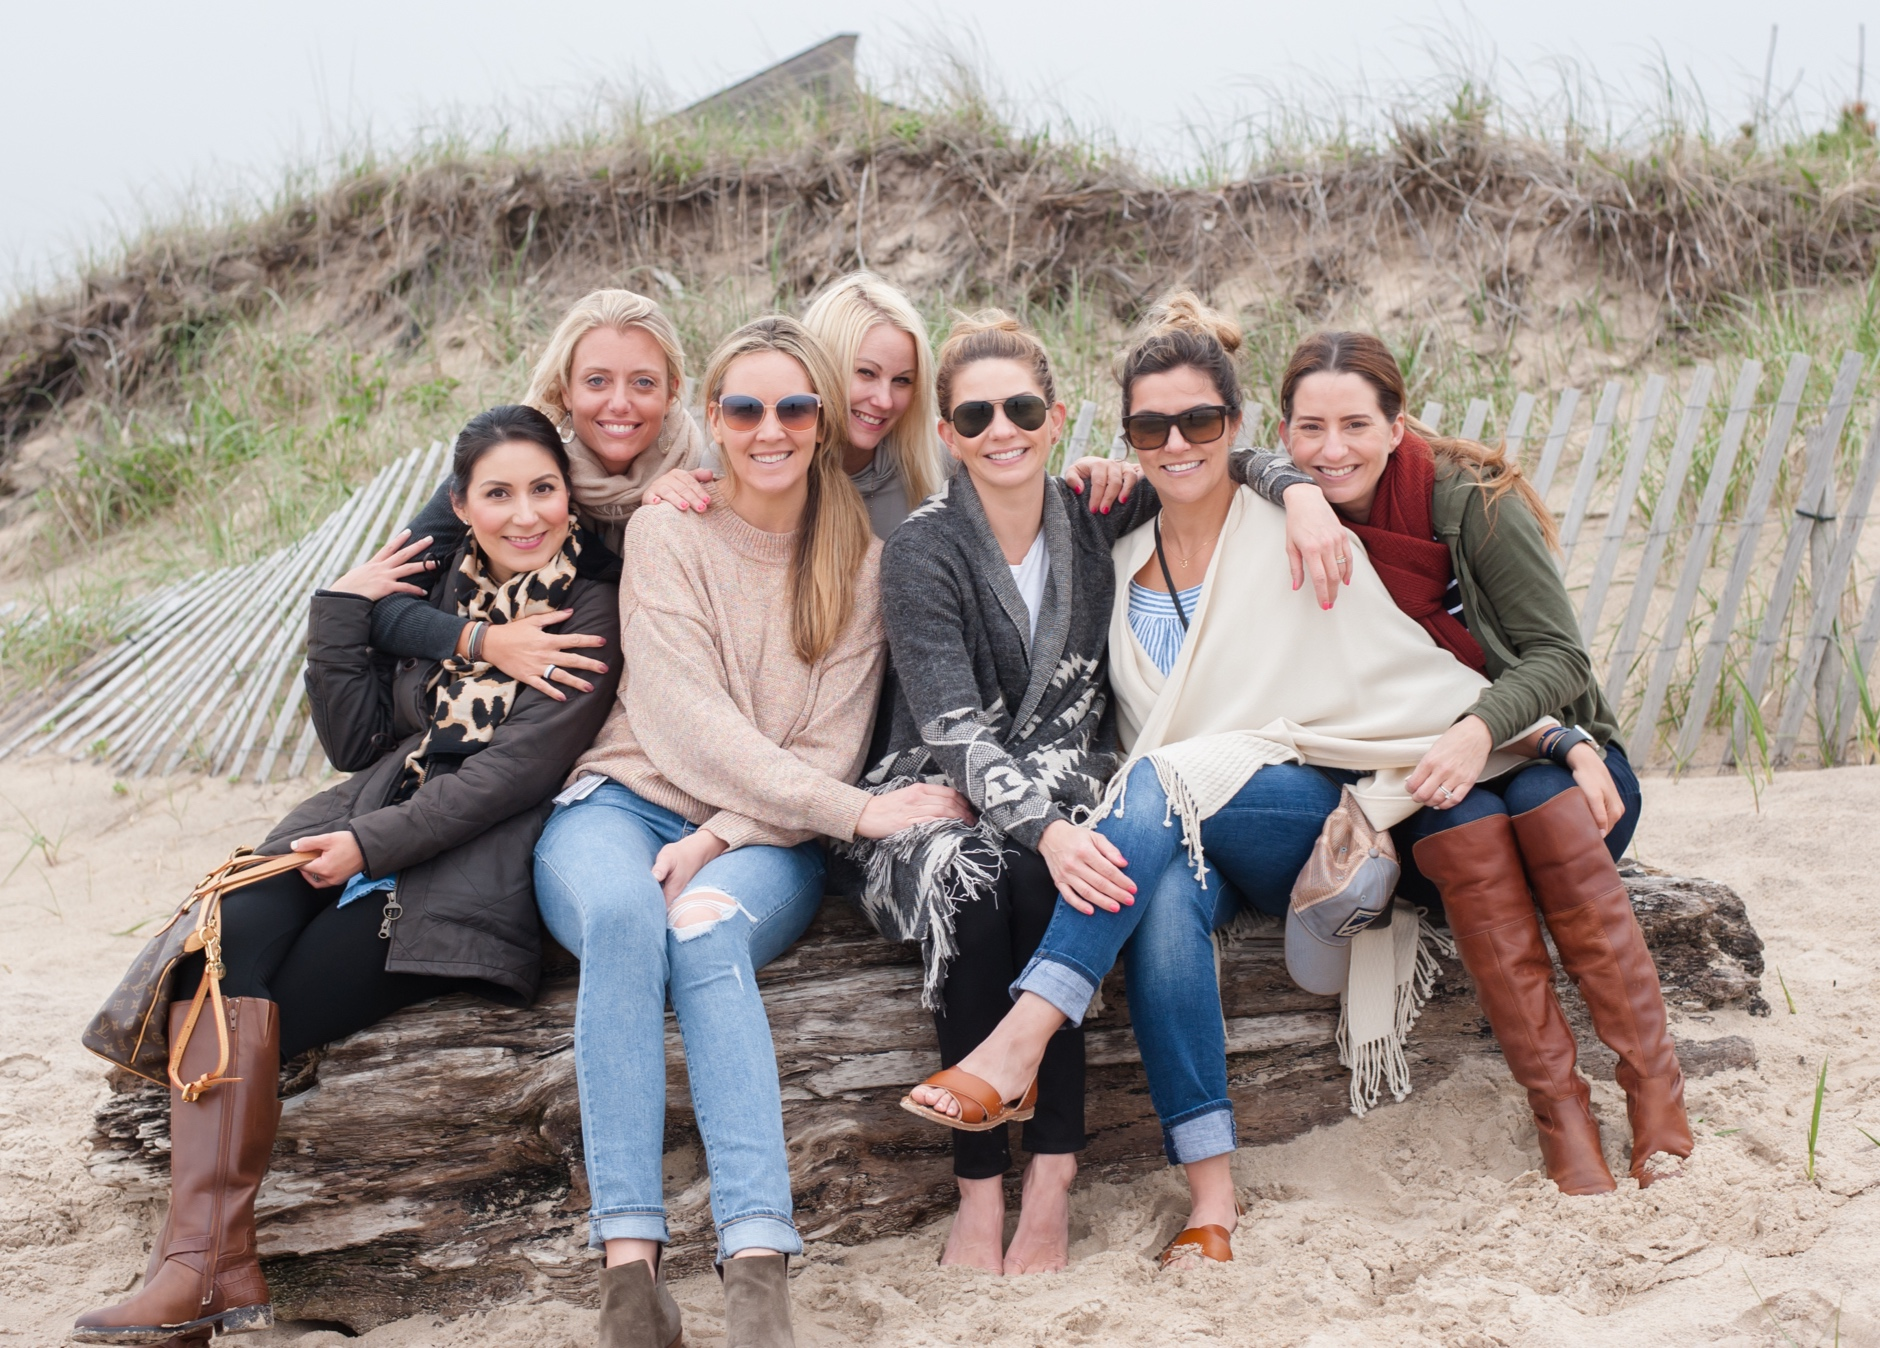 All of us on our last day - Montauk, NY